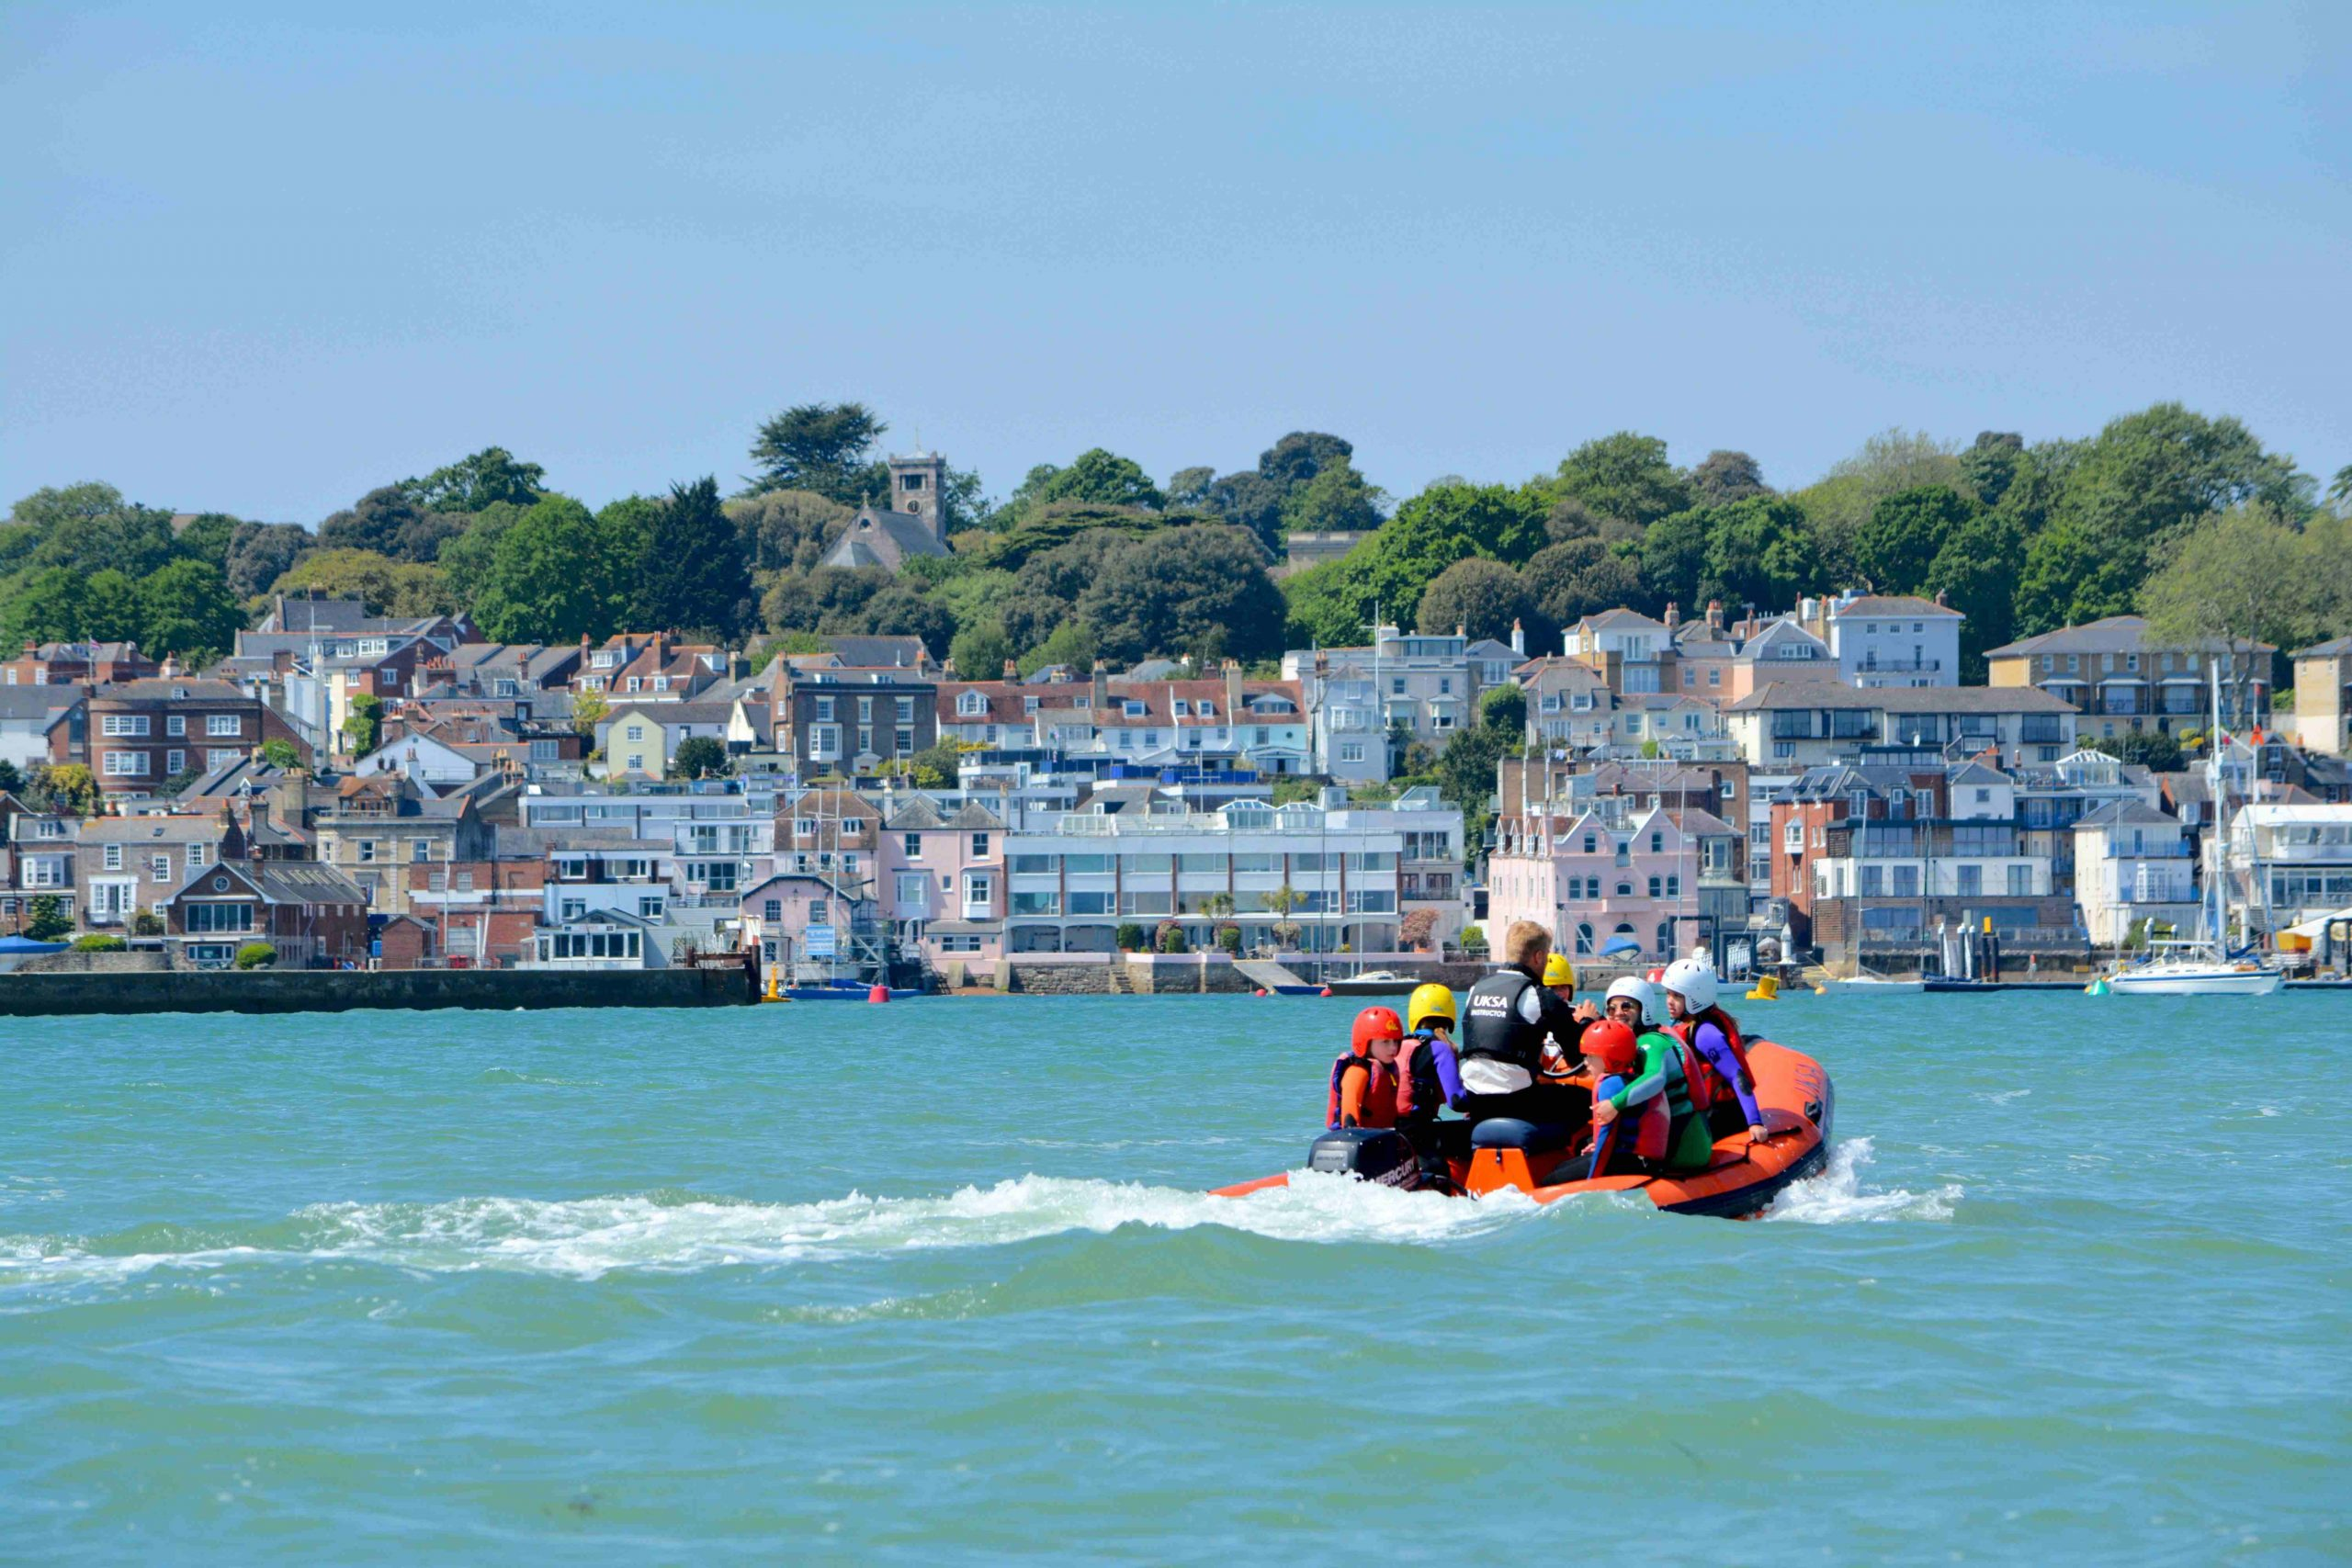 A powerboat with children on the Solent in Cowes